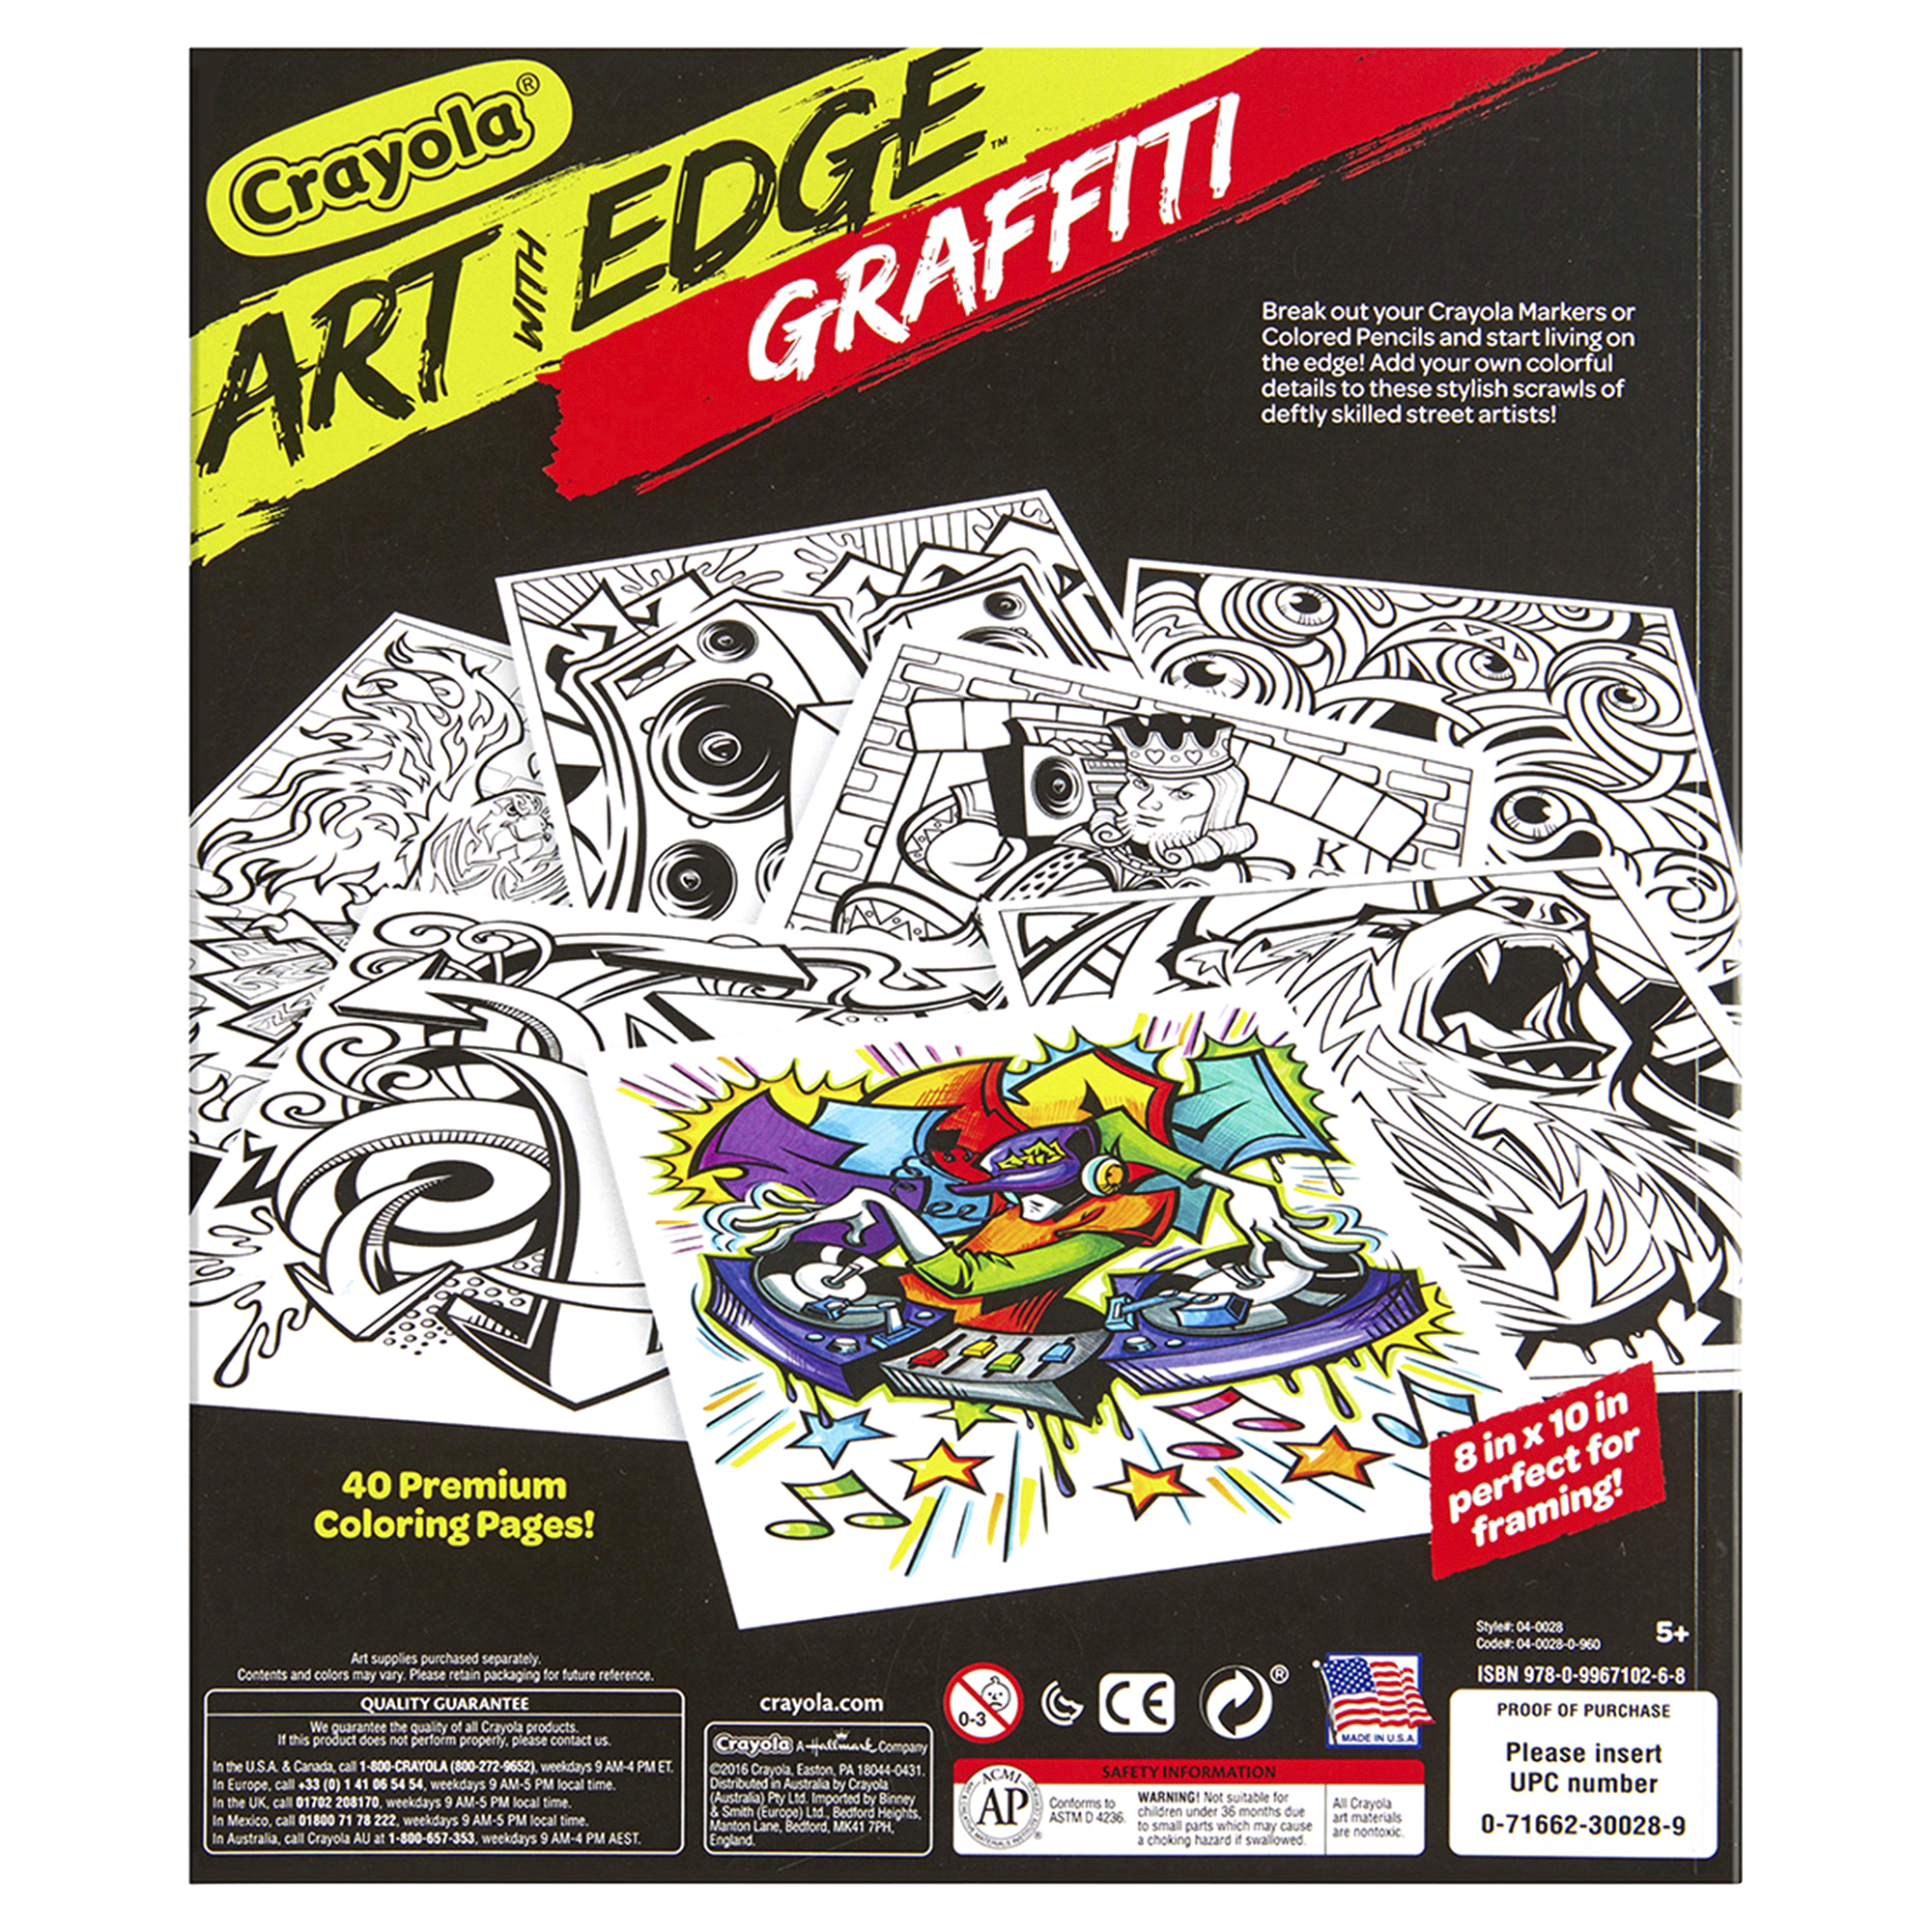 Crayola Art With Edge Graffiti Coloring Pages Meijer Com